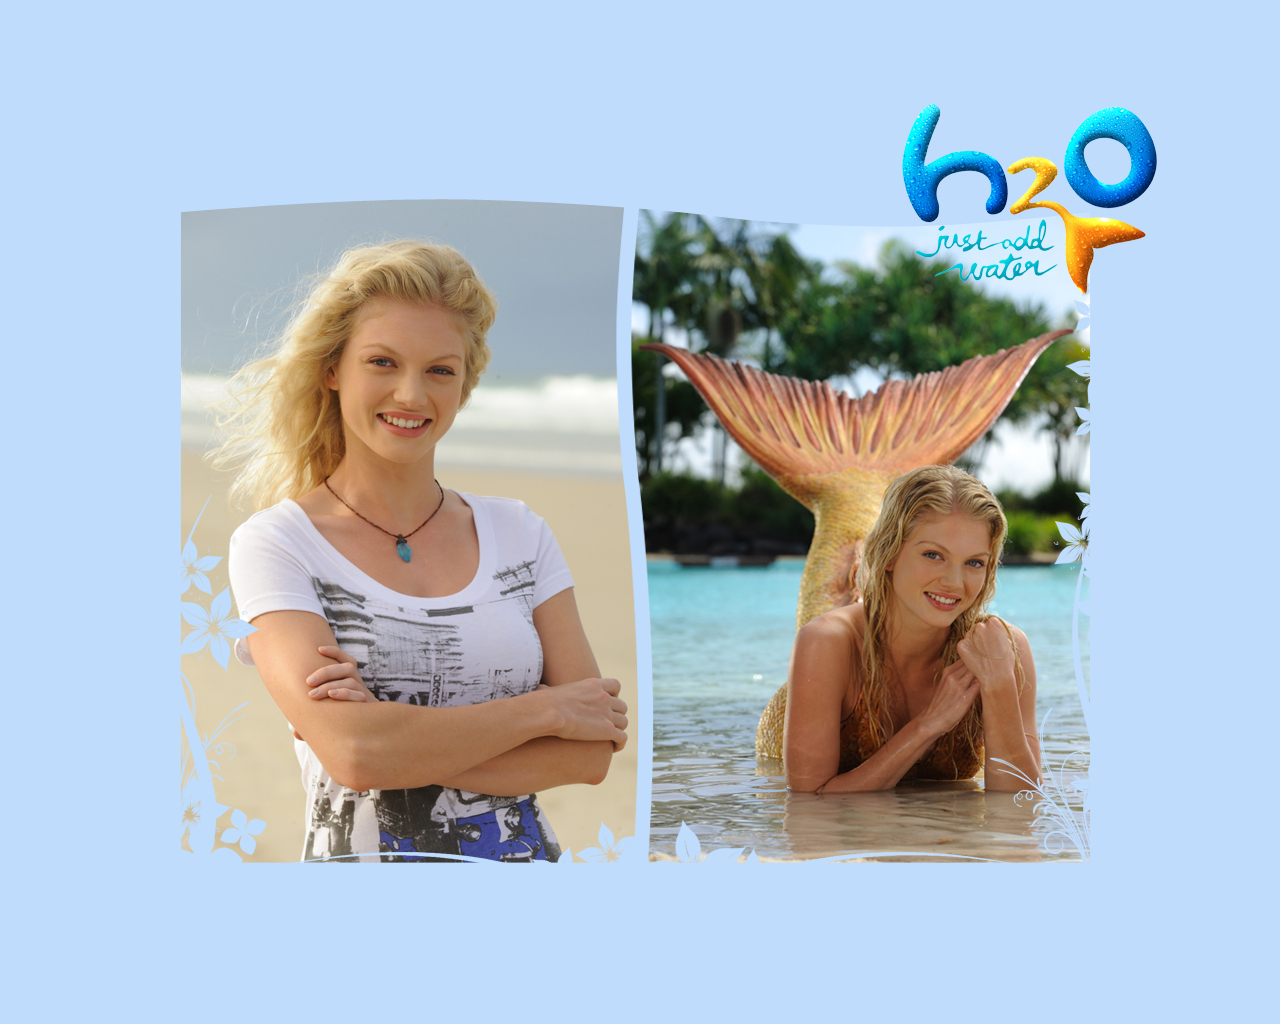 H2o rikki h2o just add water movies t v shows for H2o just add water film